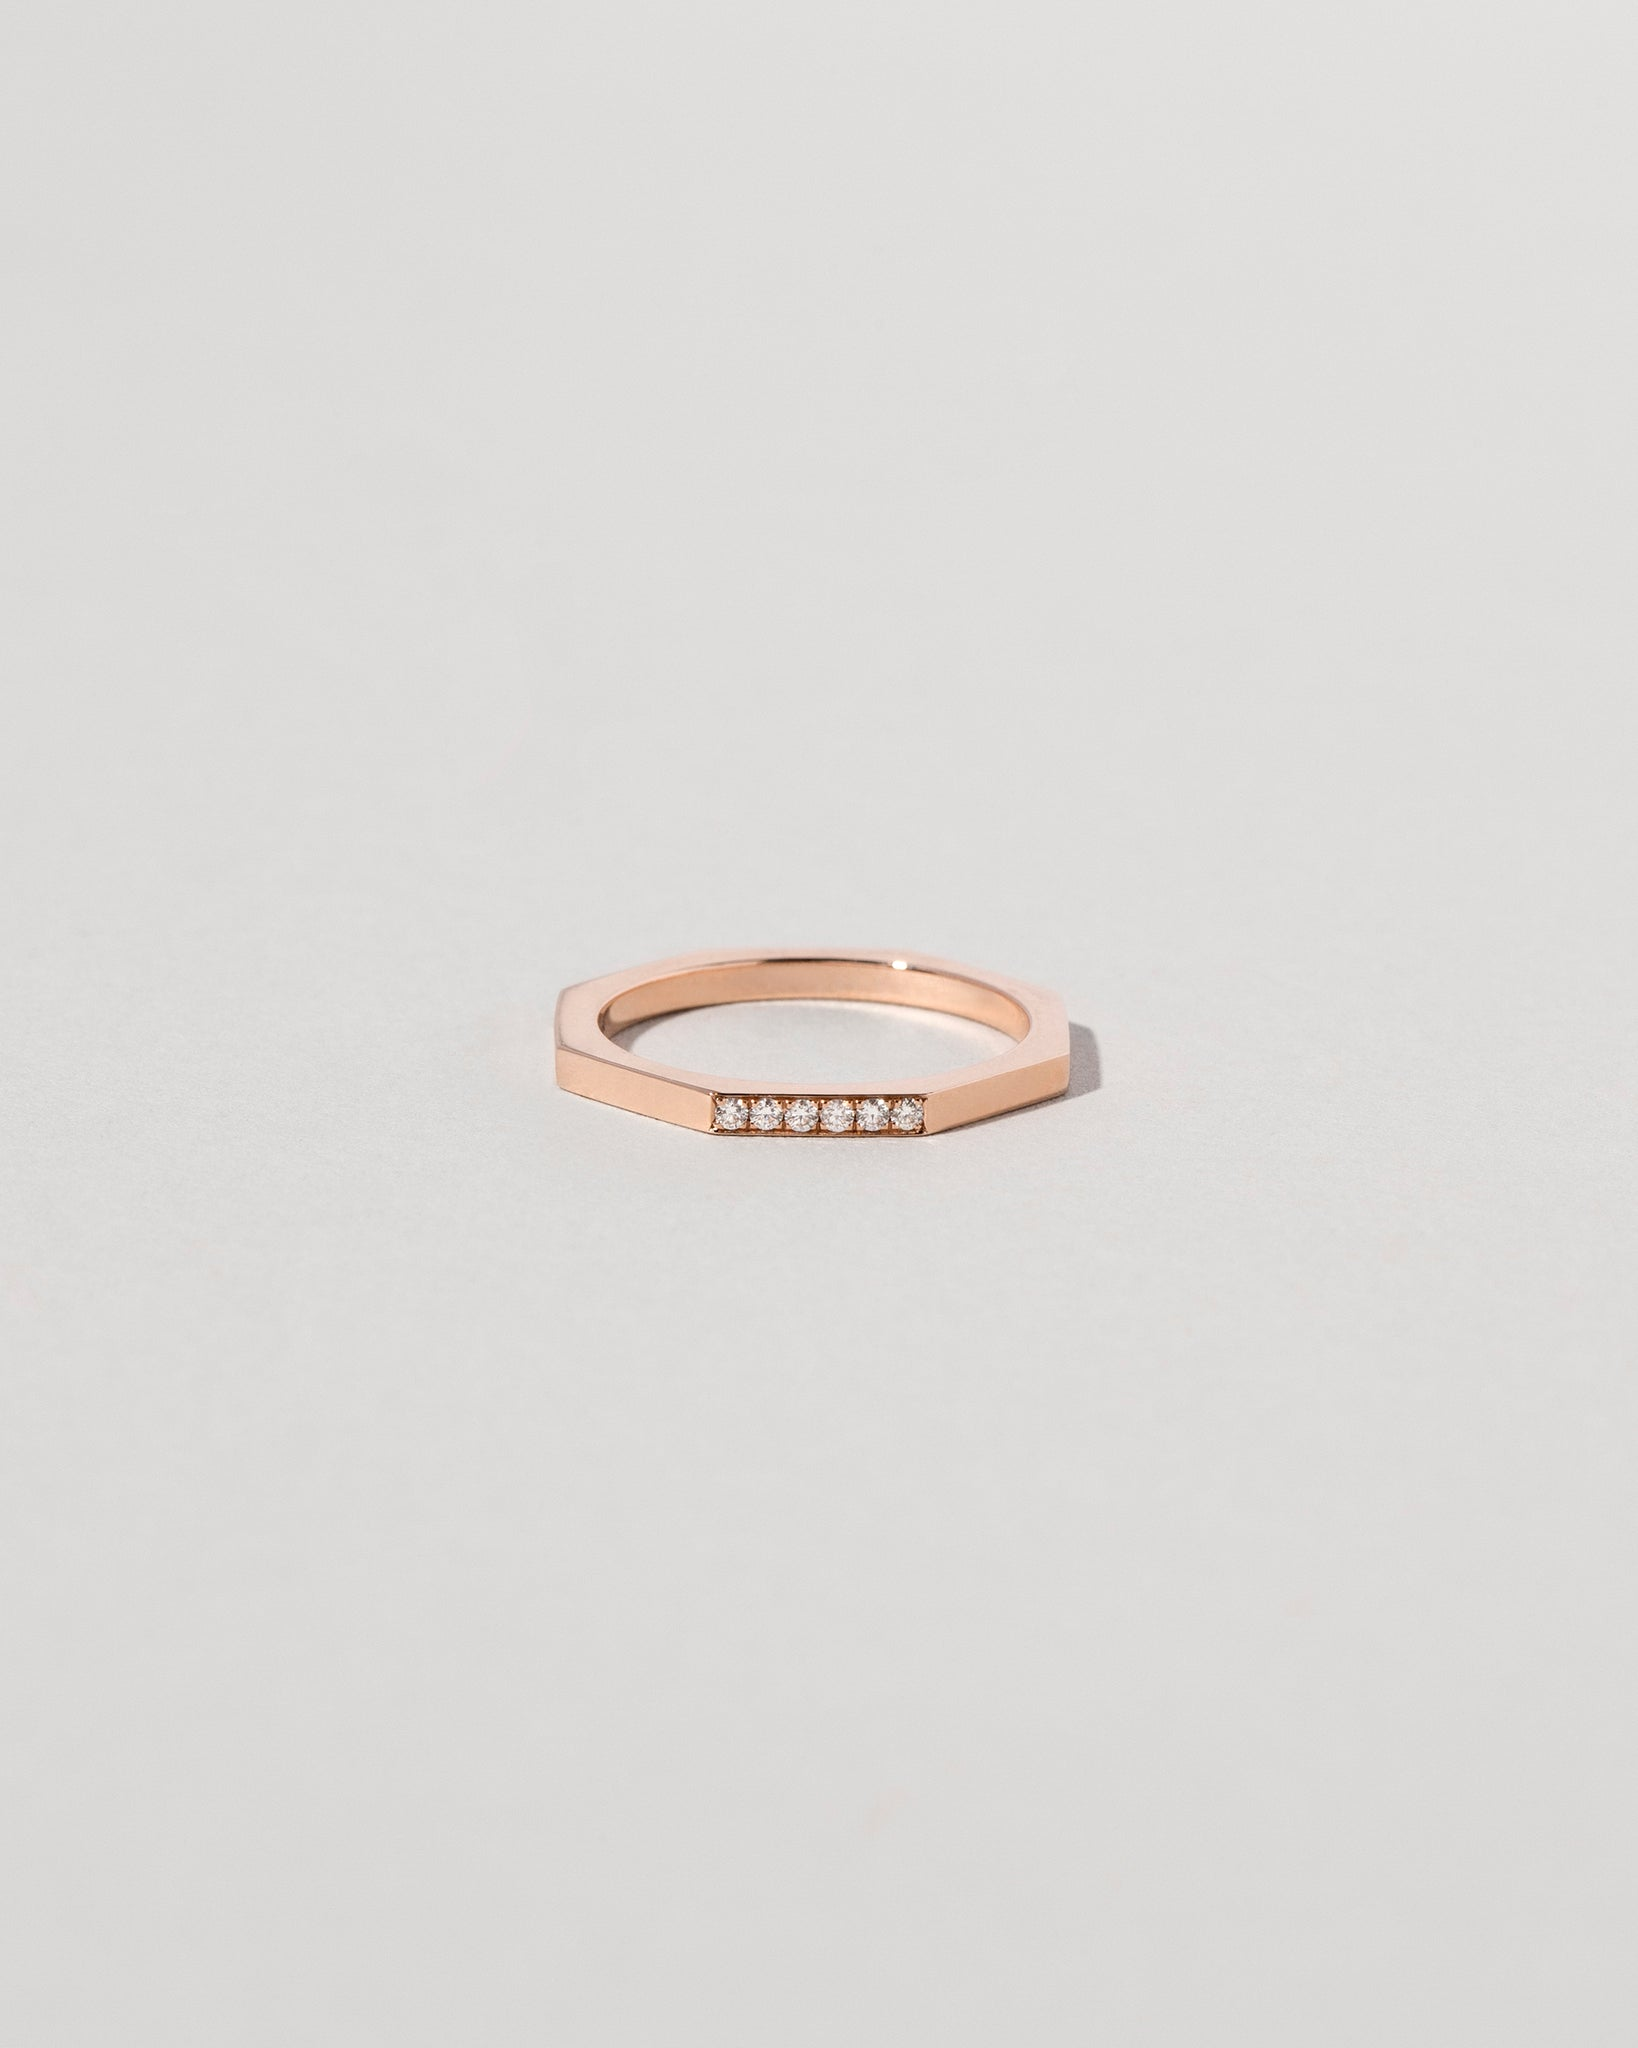 Segmented Single Side Pavé Band in Rose Gold